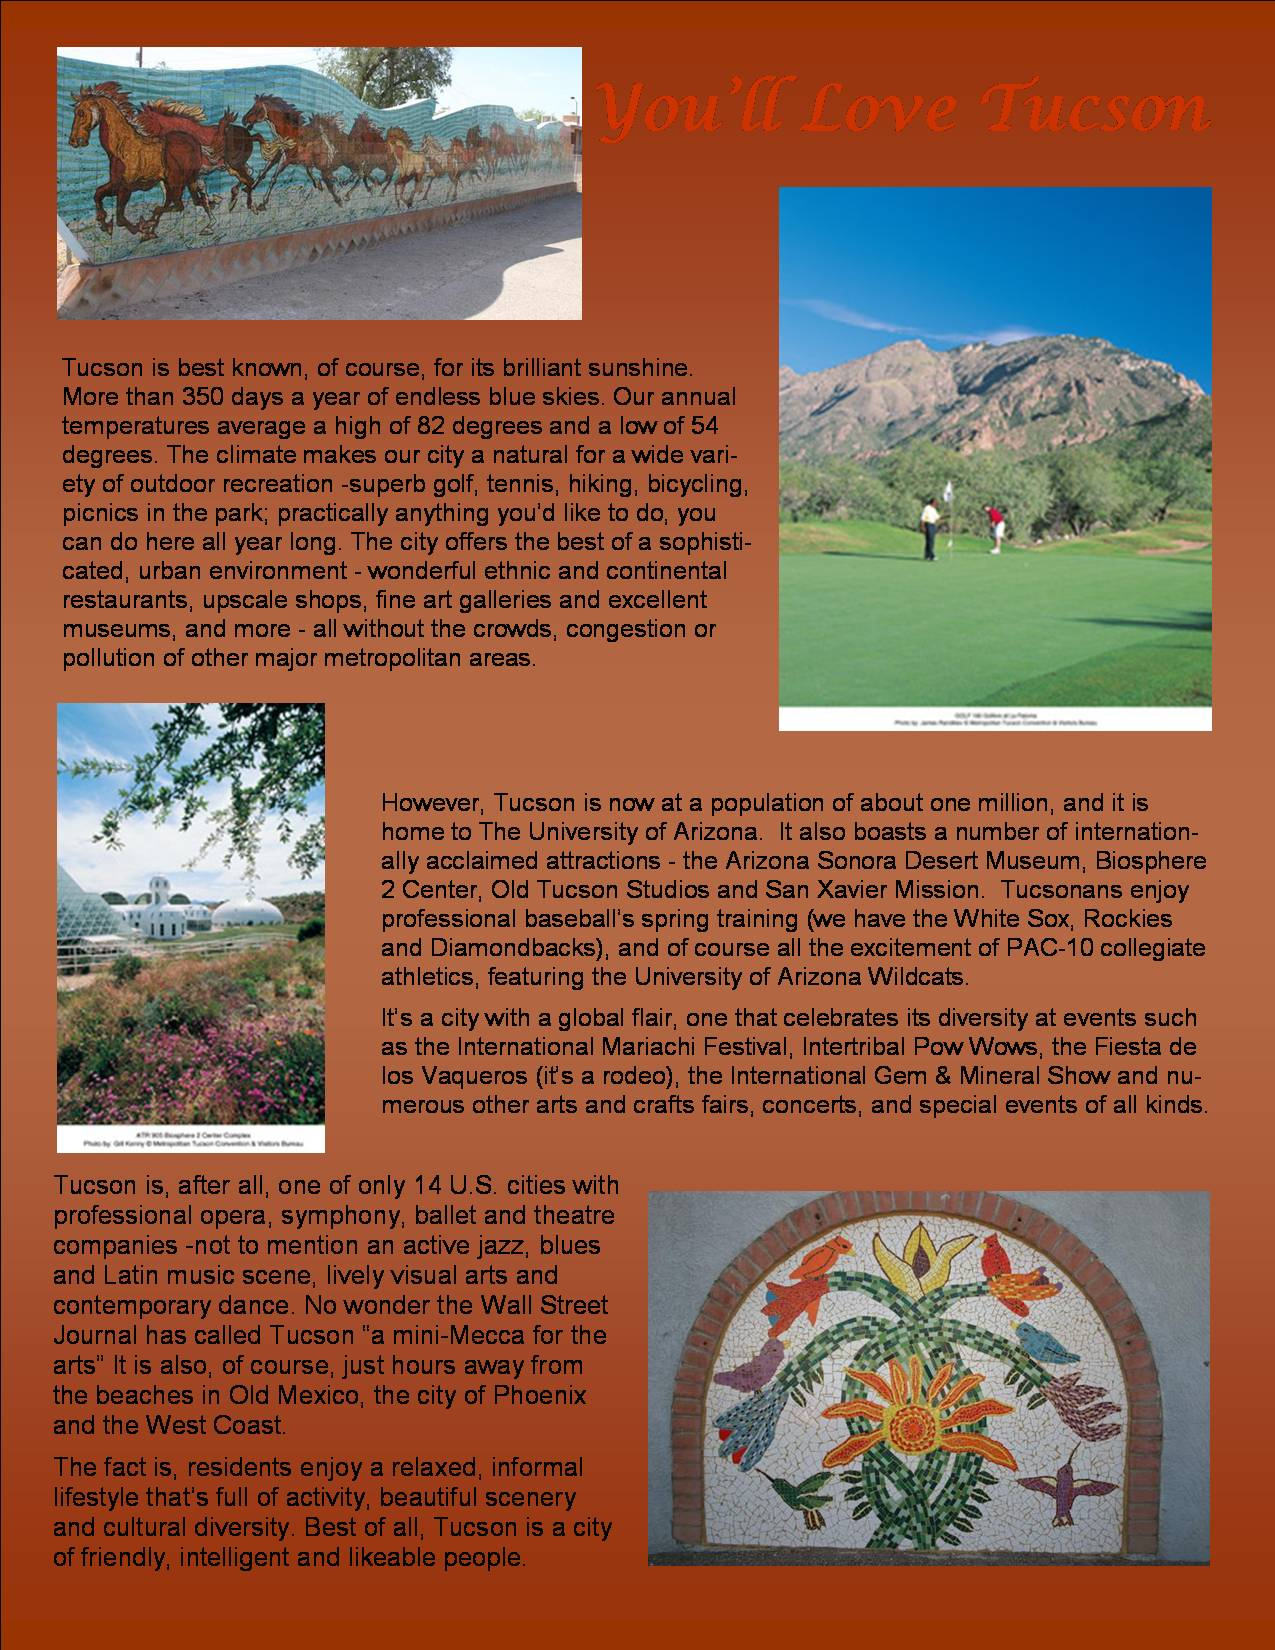 All about Tucson